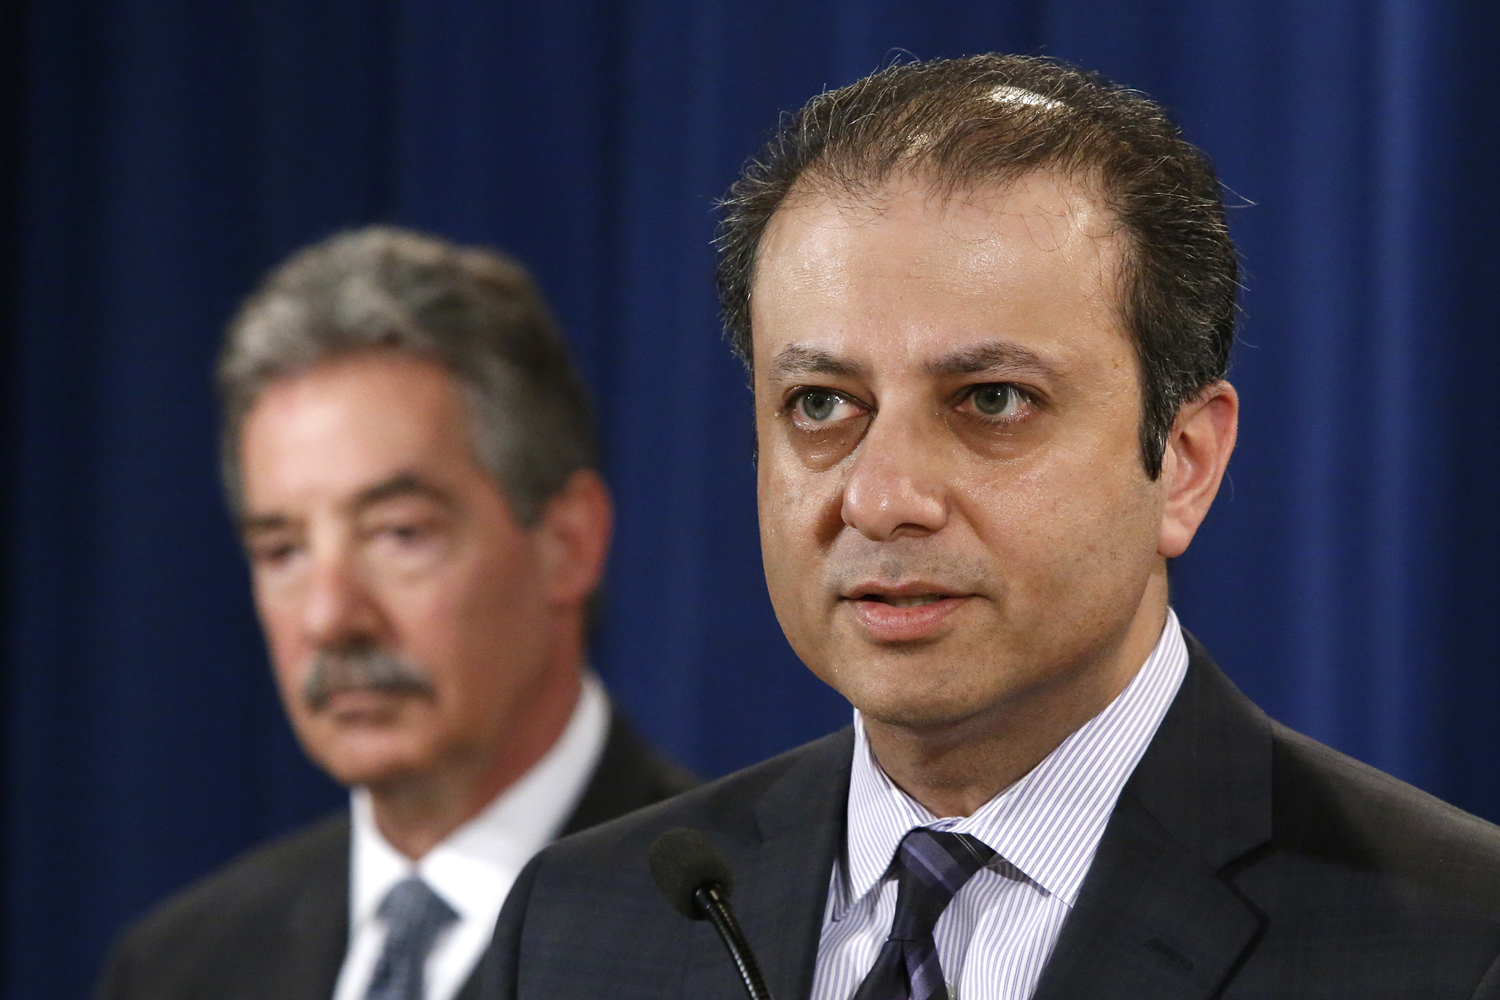 U.S. Attorney for the Southern District of New York Preet Bharara speaks during an announcement of a settlement with Anadarko Petroleum Corp at the Justice Department in Washington April 3, 2014.